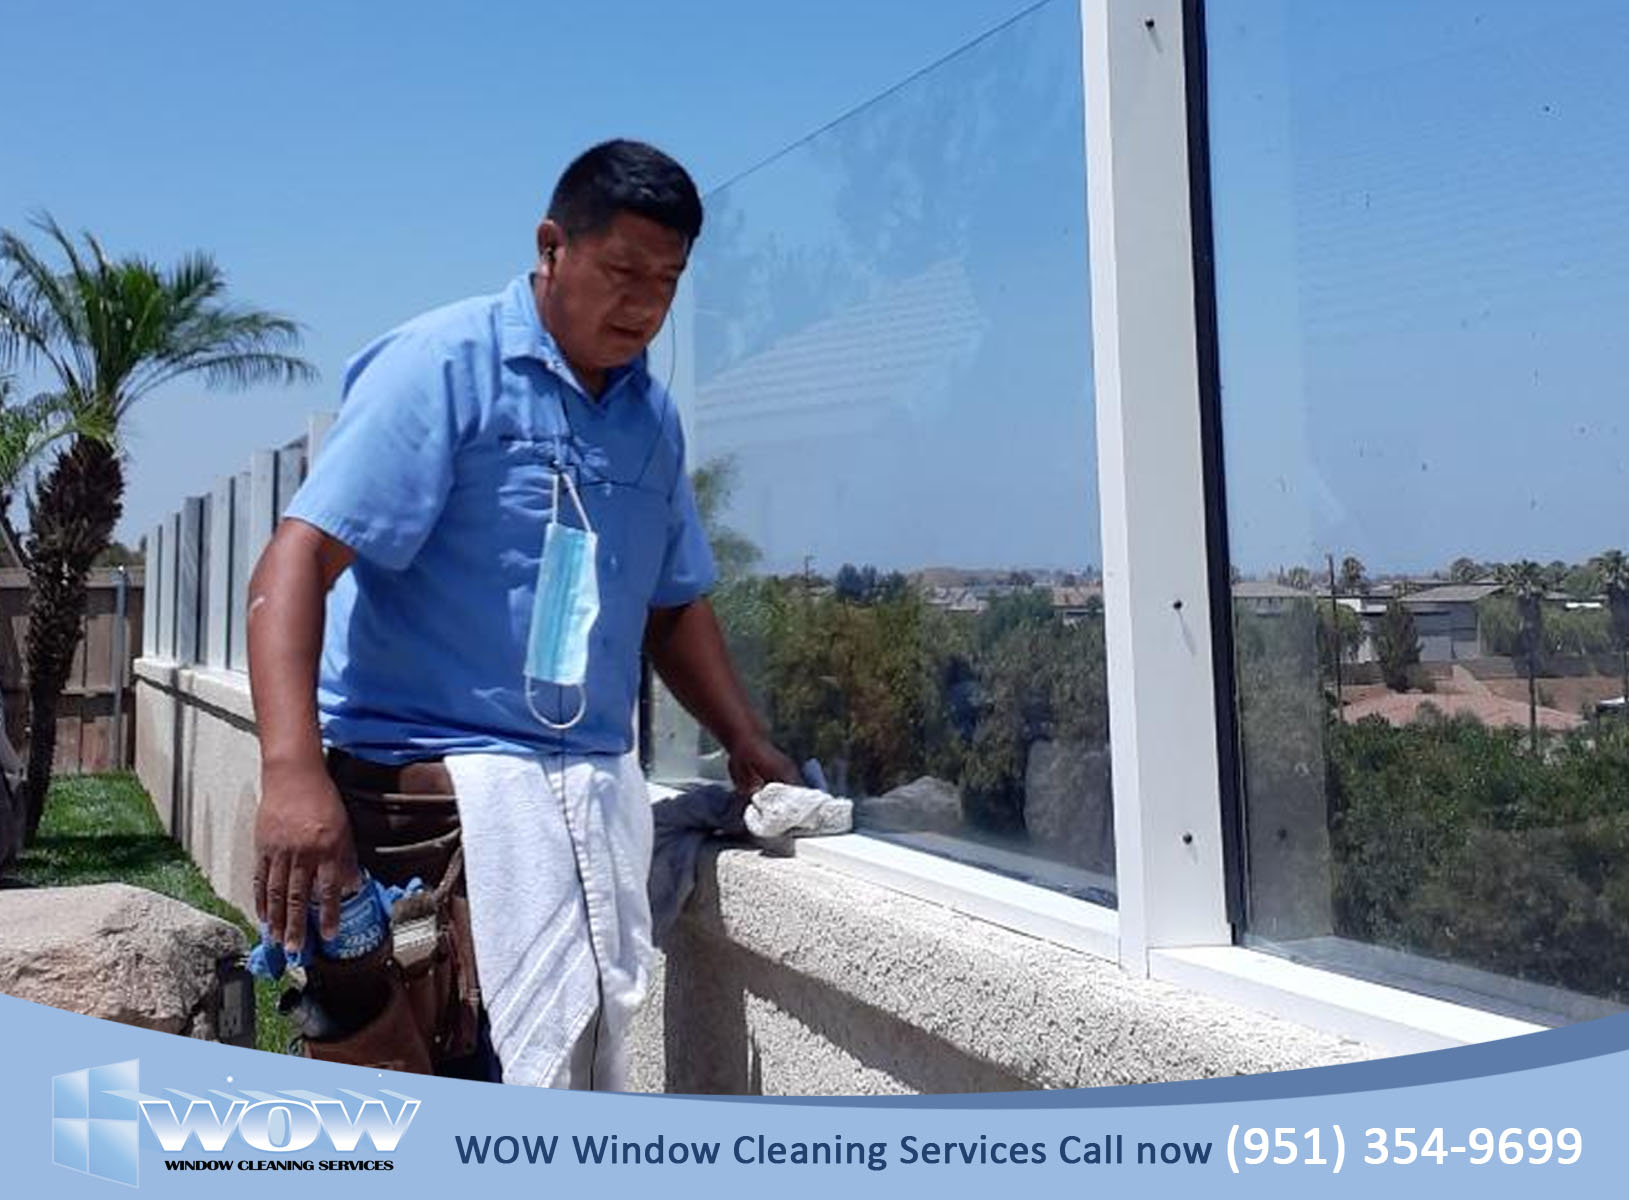 Moreno Valley Riverside Windown Cleaning, house pressure wash, shutters residential commercial